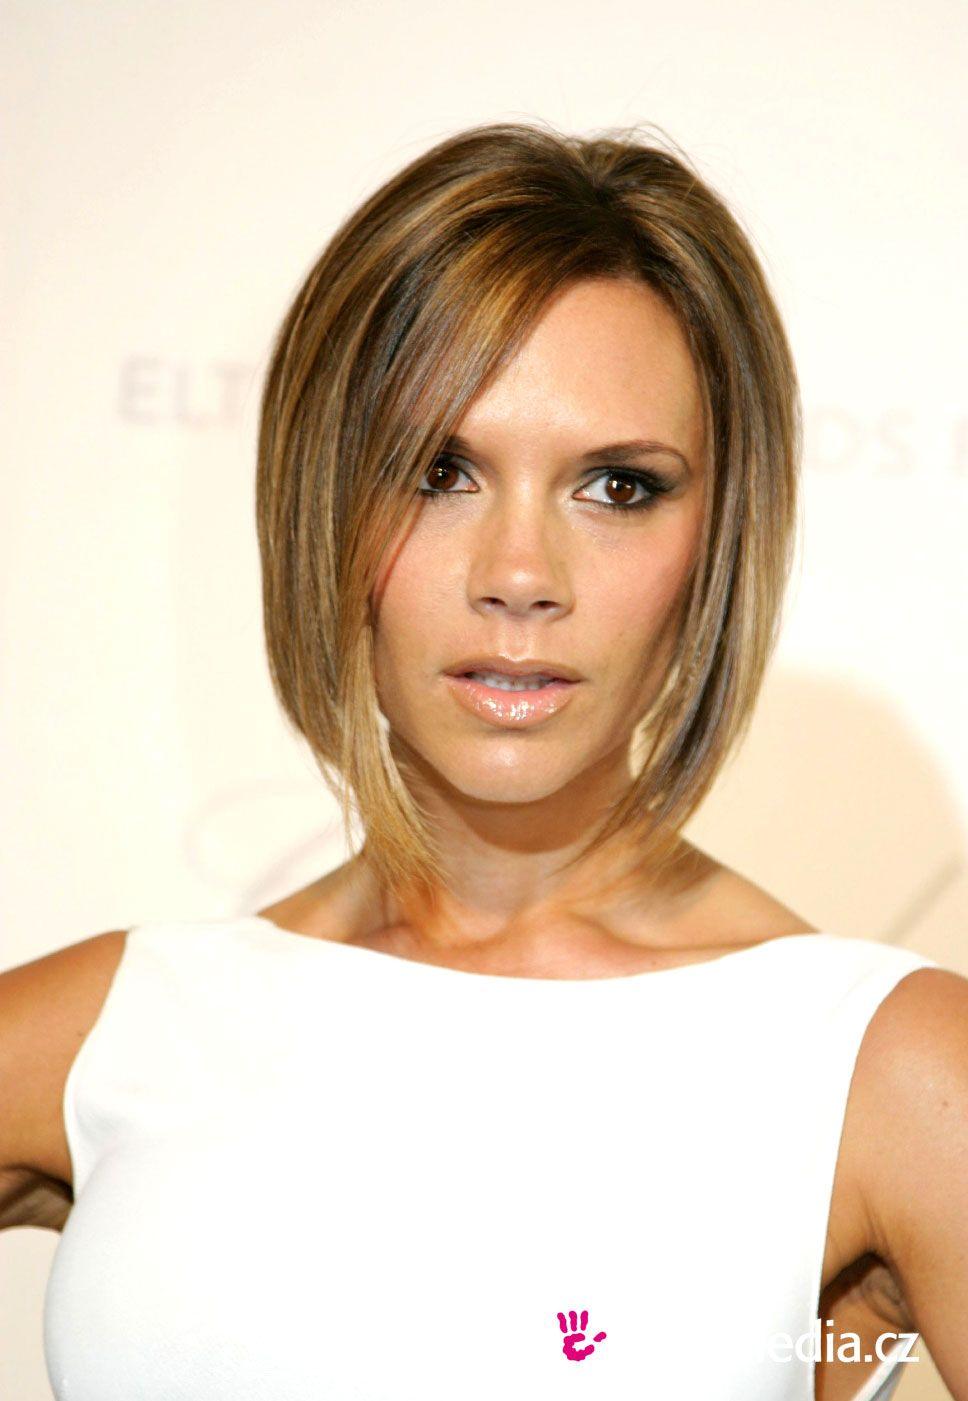 Think A Stacked Bob Is The Next Thing Beckham Frisur Frisur Bob Hinten Victoria Beckham Frisur